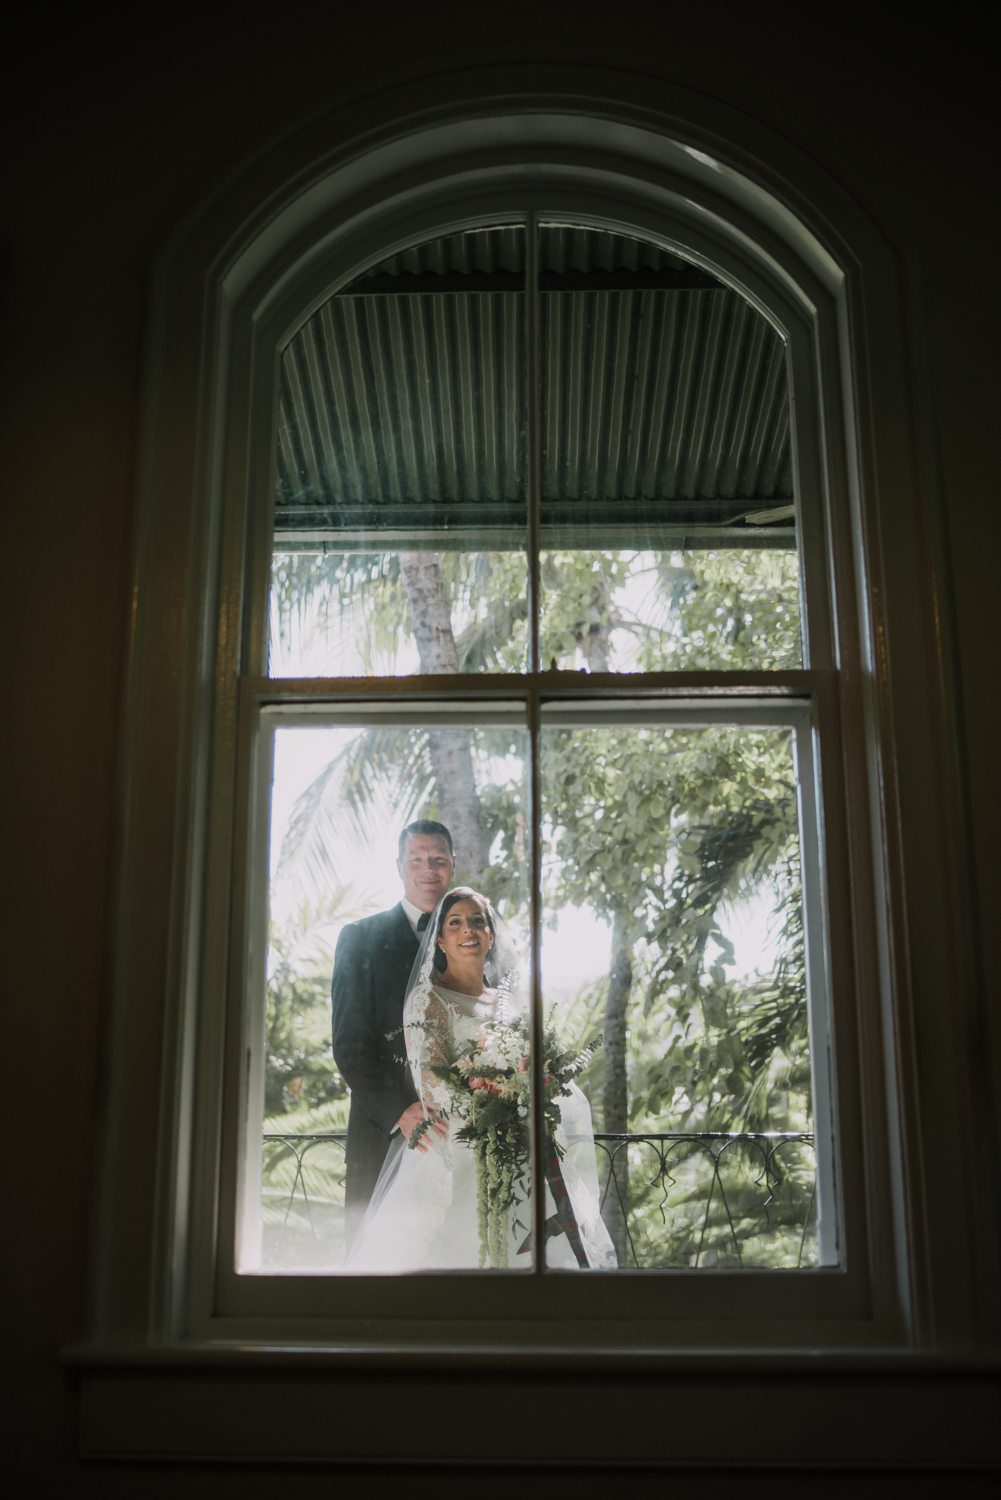 Bride and groom posing for a wedding portrait